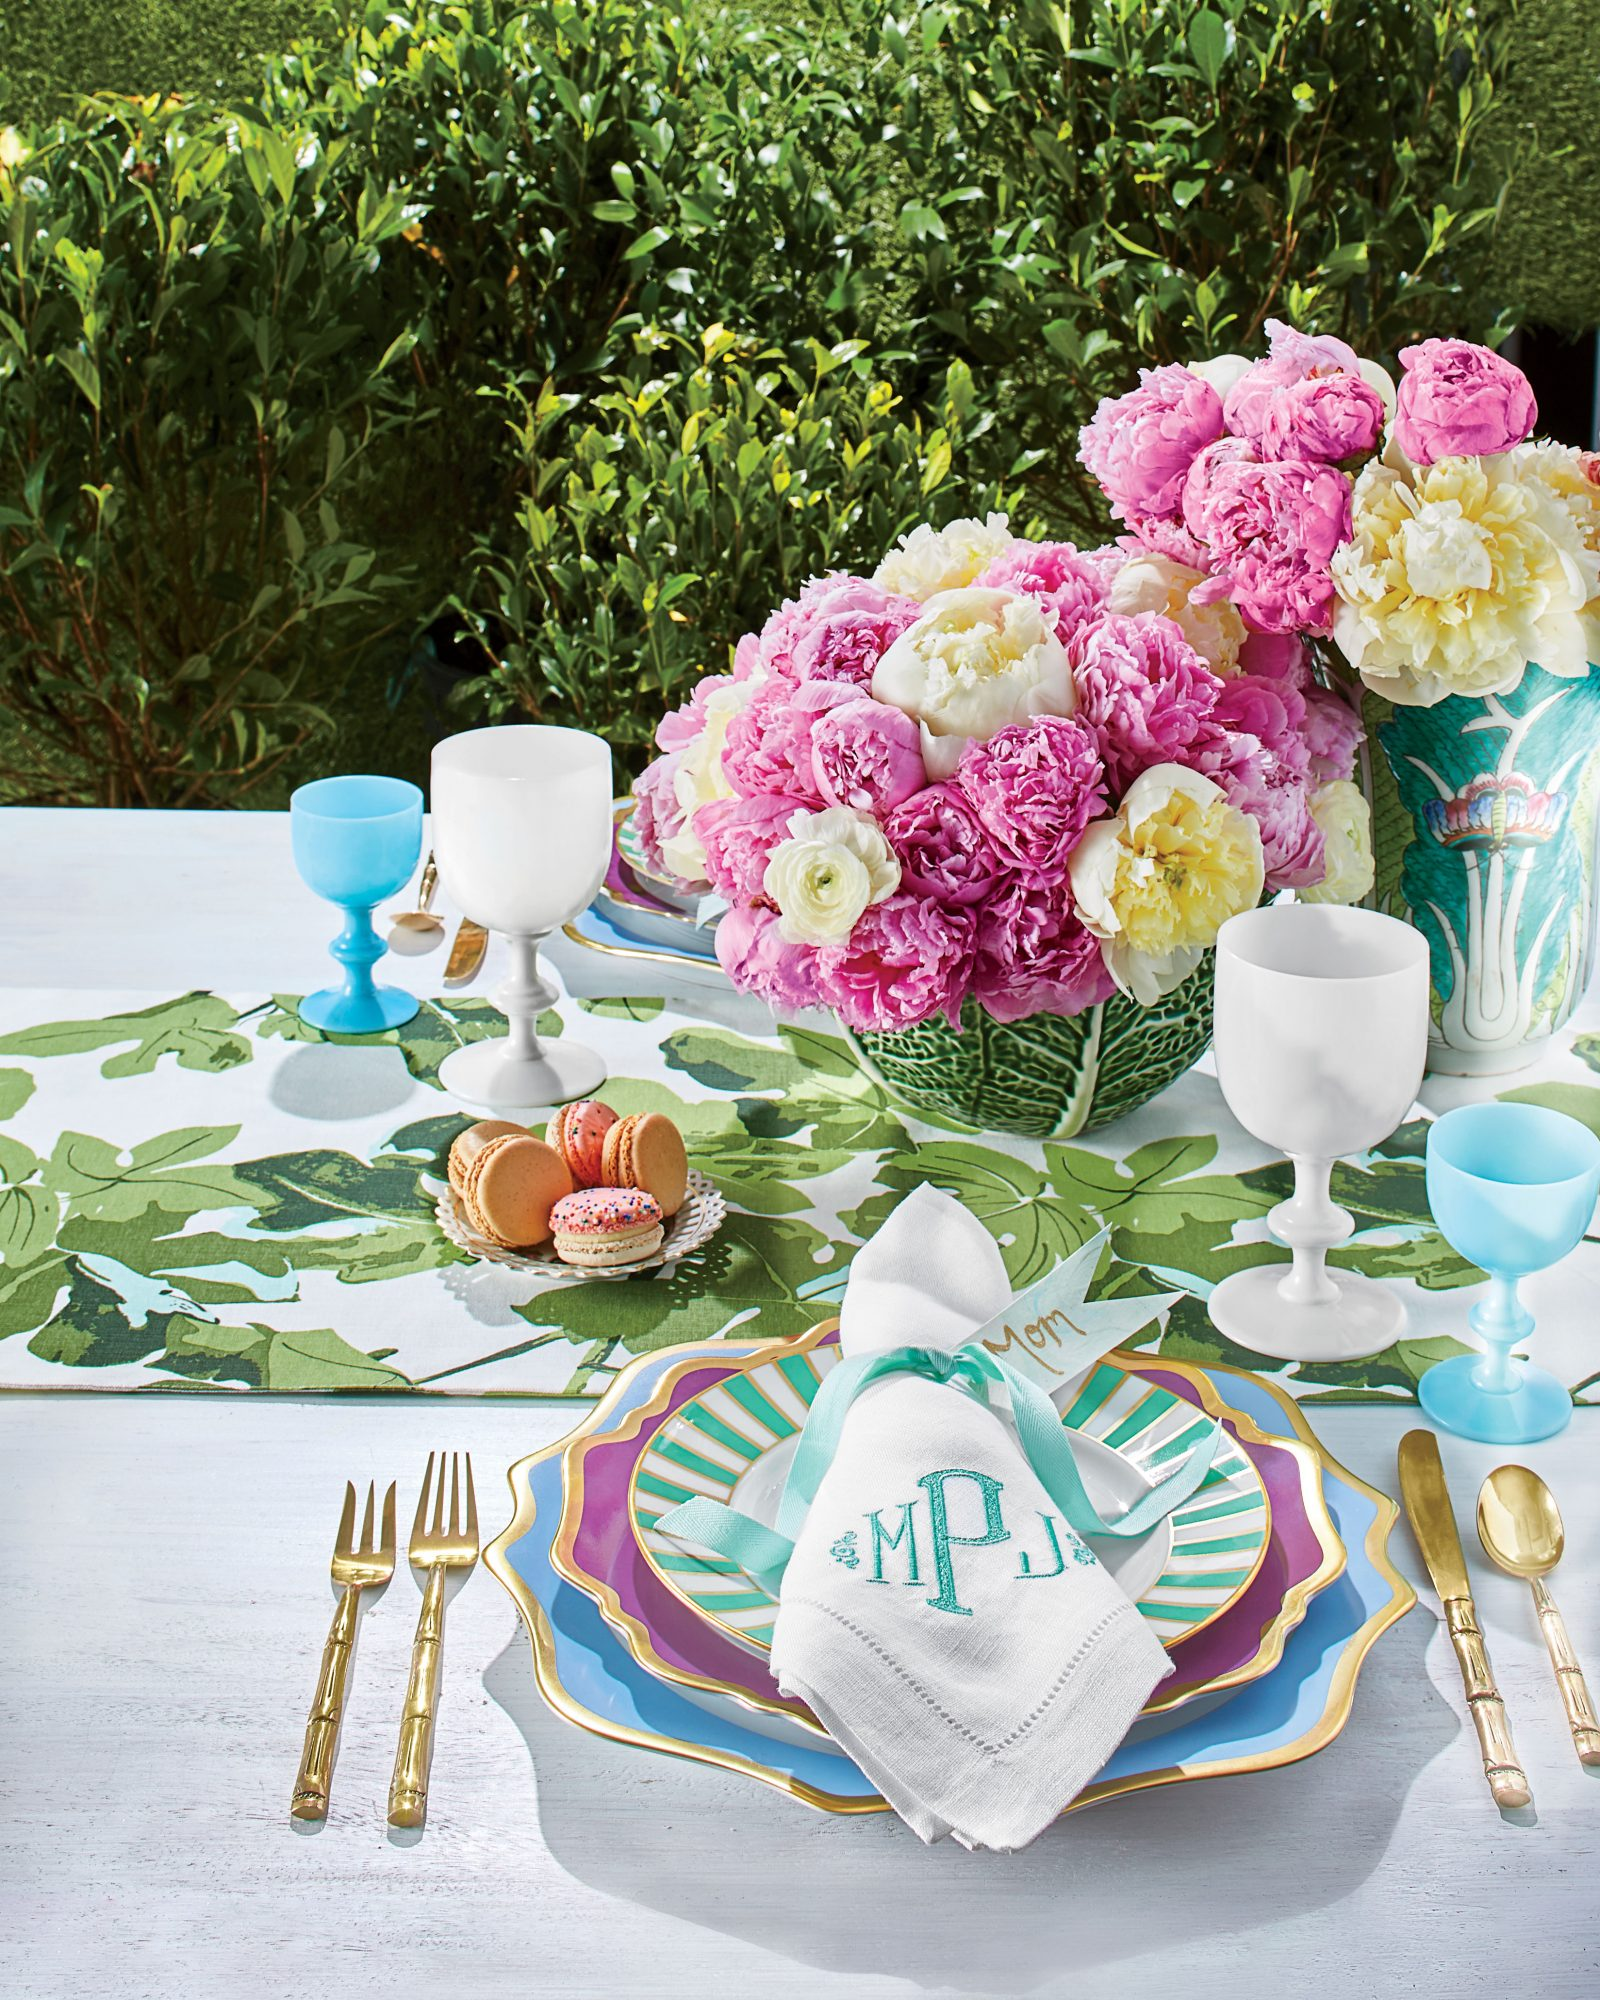 Garden Party Table Setting with Pink Peonies